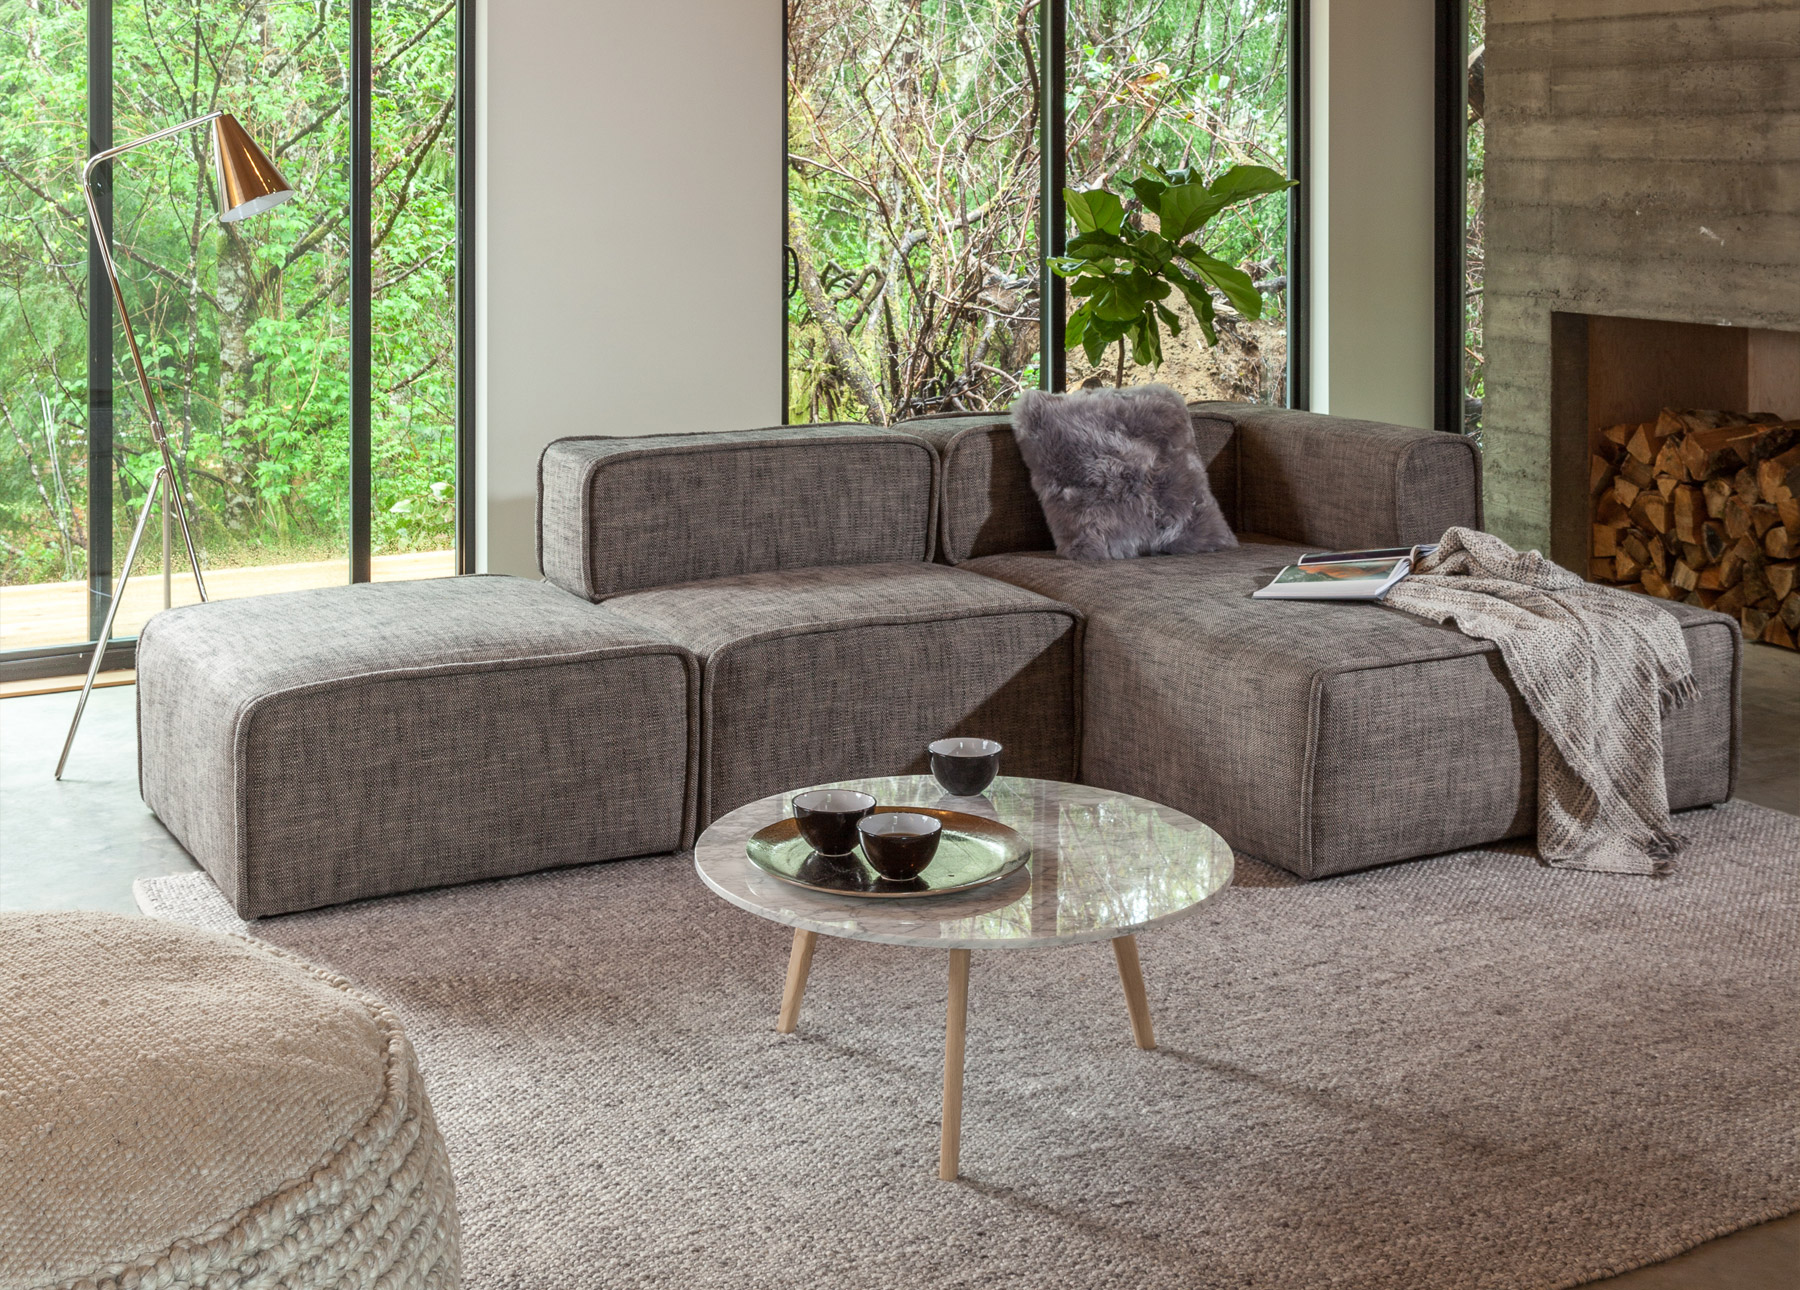 Dedicated apartment width sofas and customizable modular sectionals like quadra work great for small living spaces